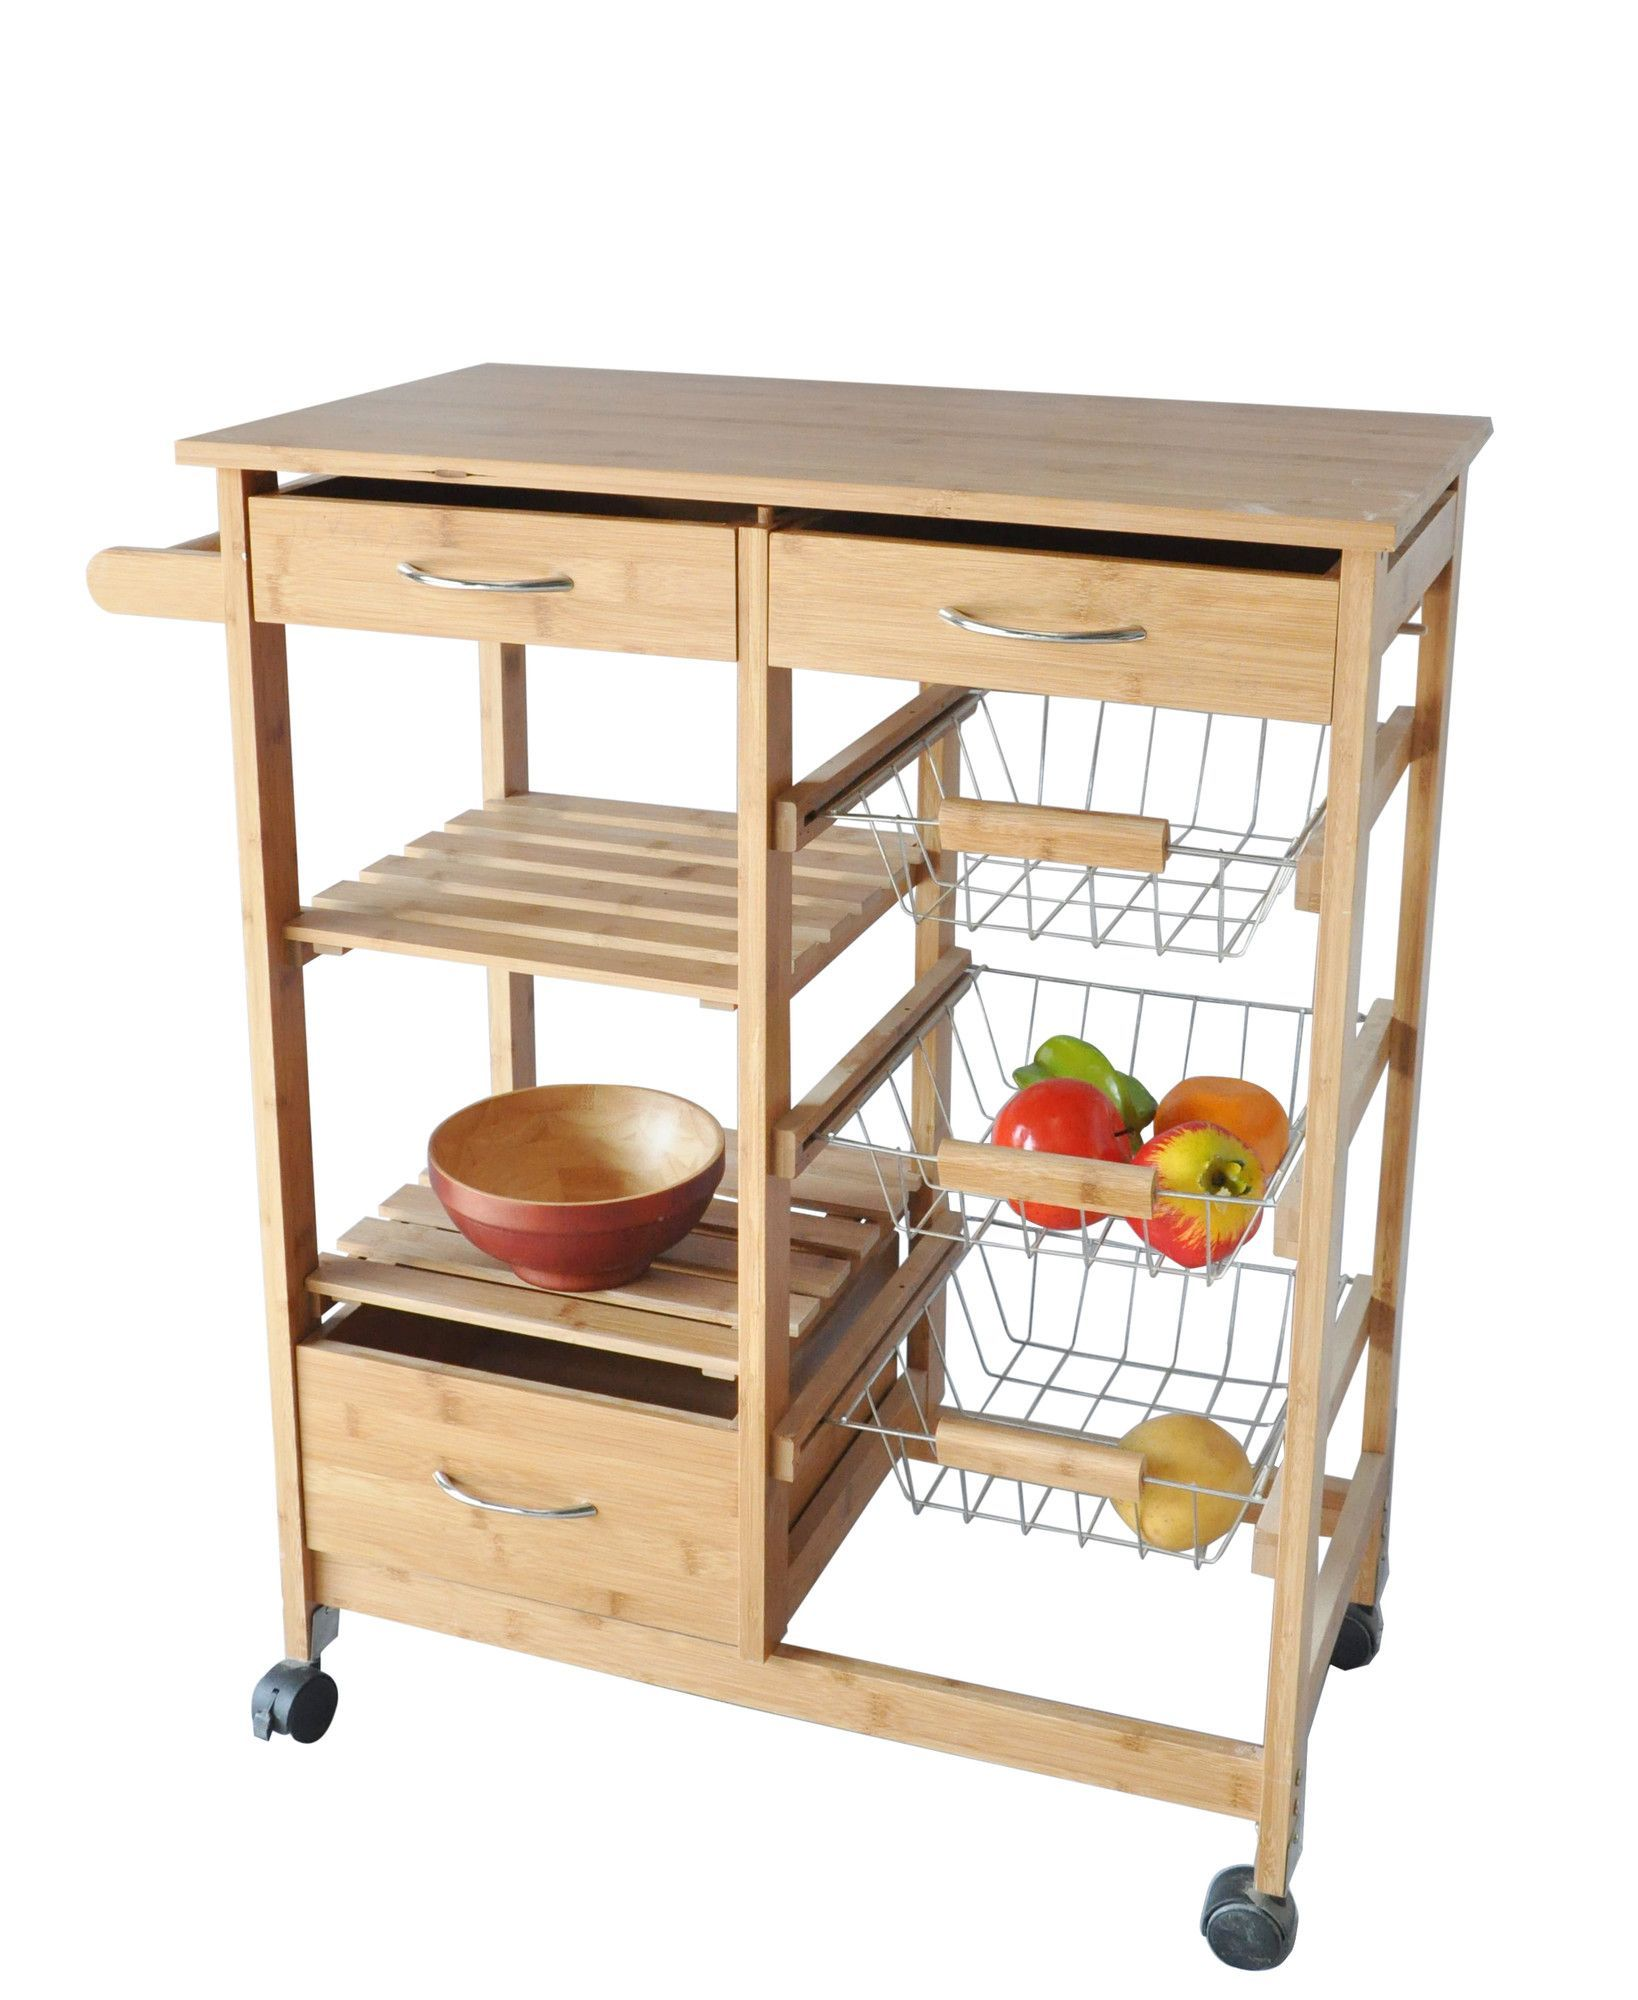 Cheaper kitchen island option. Could customize more with additional ...